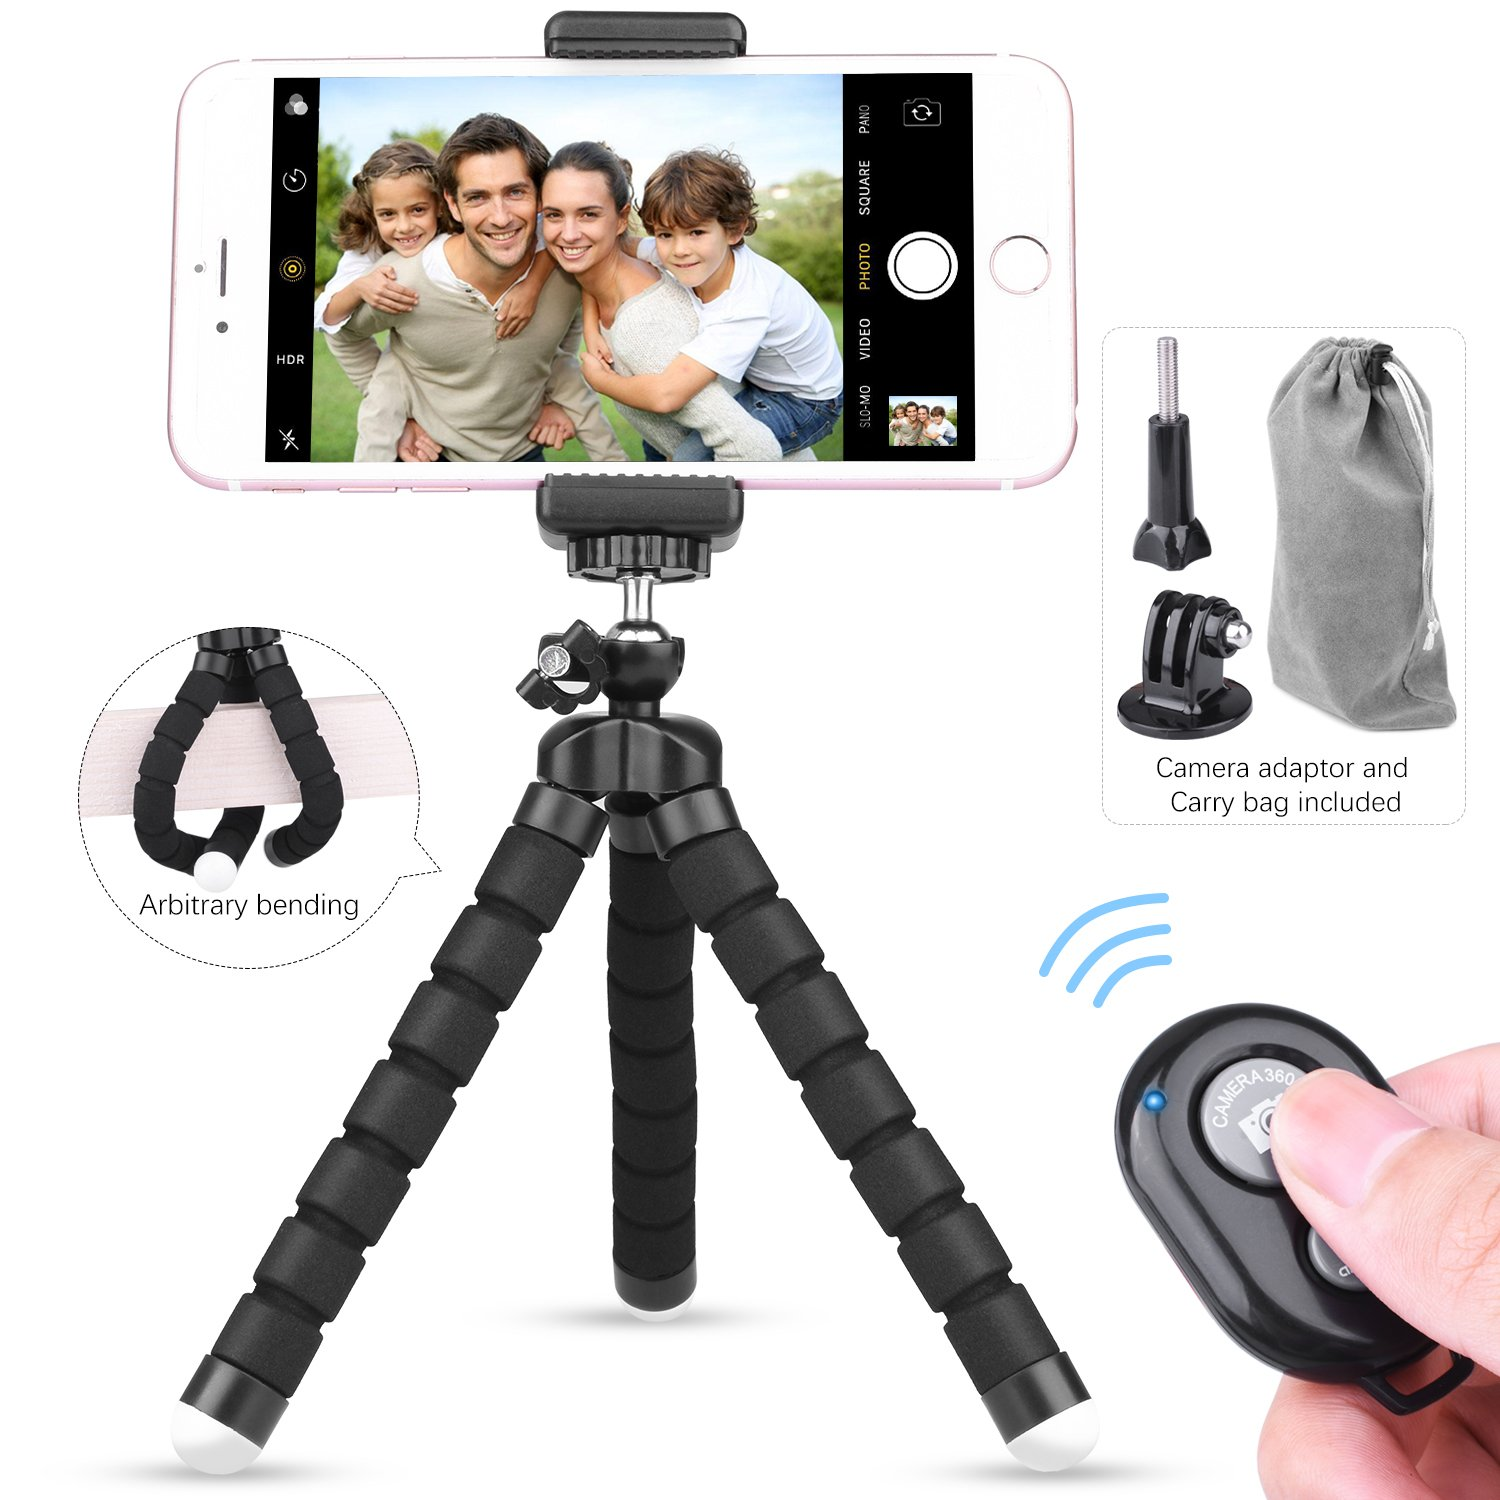 ETEPON Phone Tripod, Portable Flexible Mini Tripod Camera Stand Holder with Tripod Mount Bluetooth Remote Shutter, Camera Adapter Universal Clip & Portable Bag for iPhone, Android, DVS, GoPro EP001